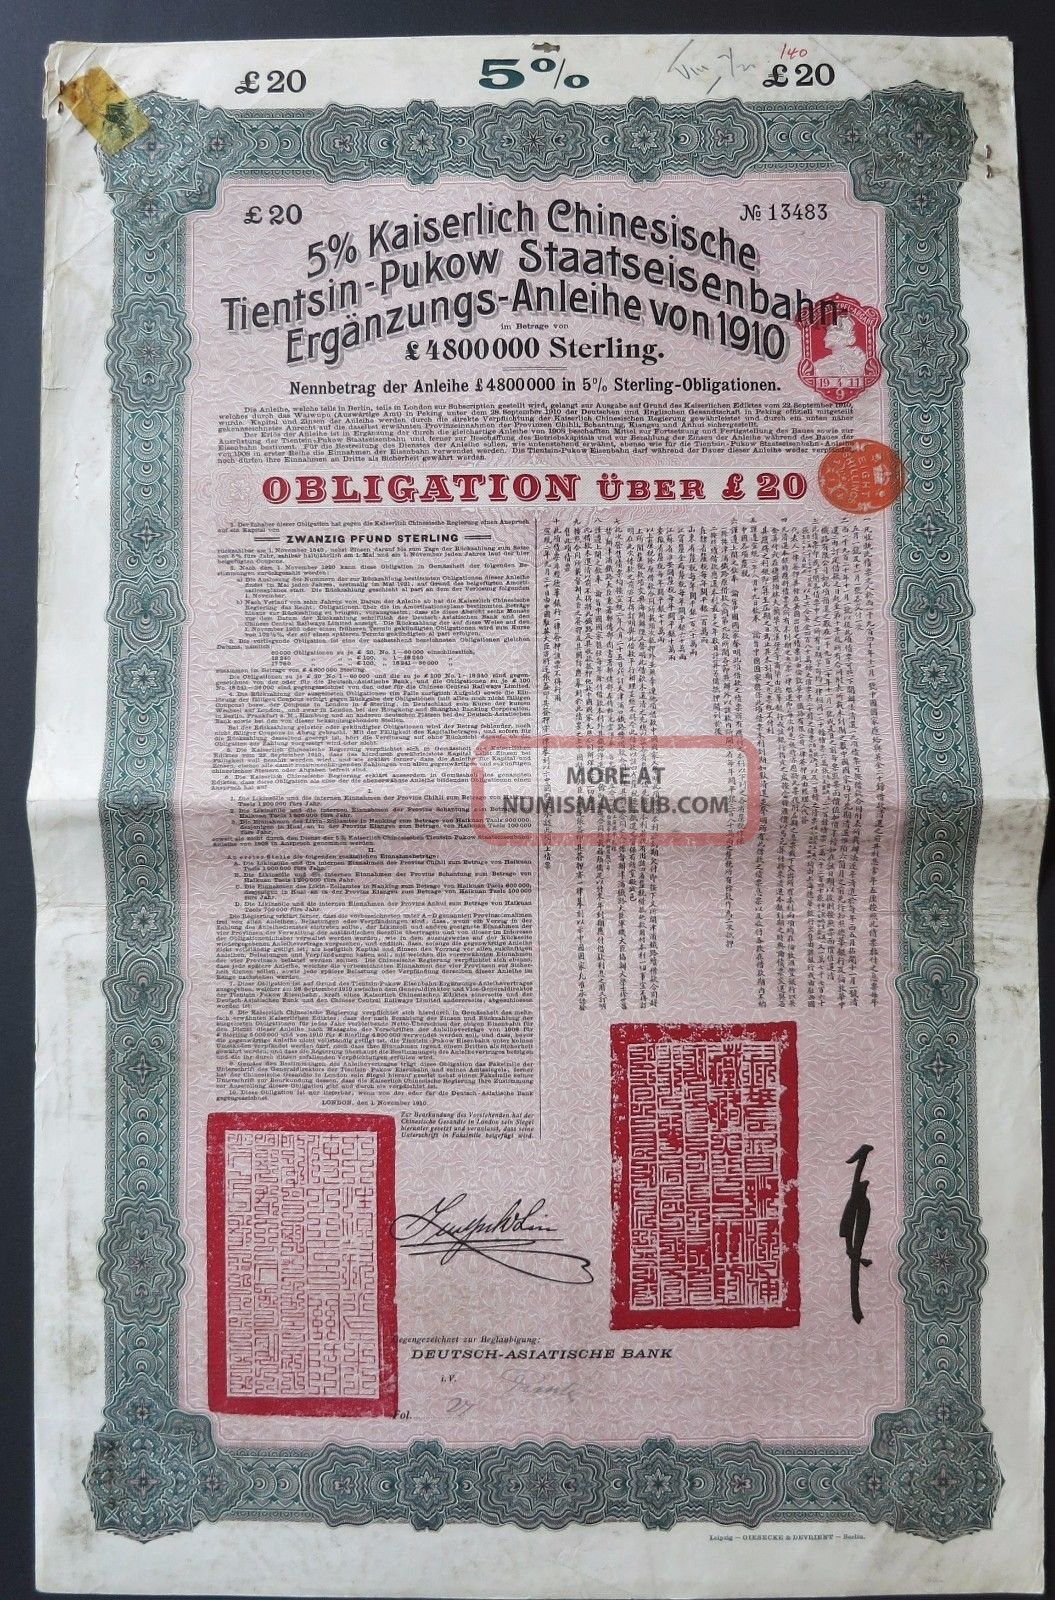 Imperial Chinese Government Loan Certificate 20 Pounds 1908 Tientsin - Pukow Rr Stocks & Bonds, Scripophily photo